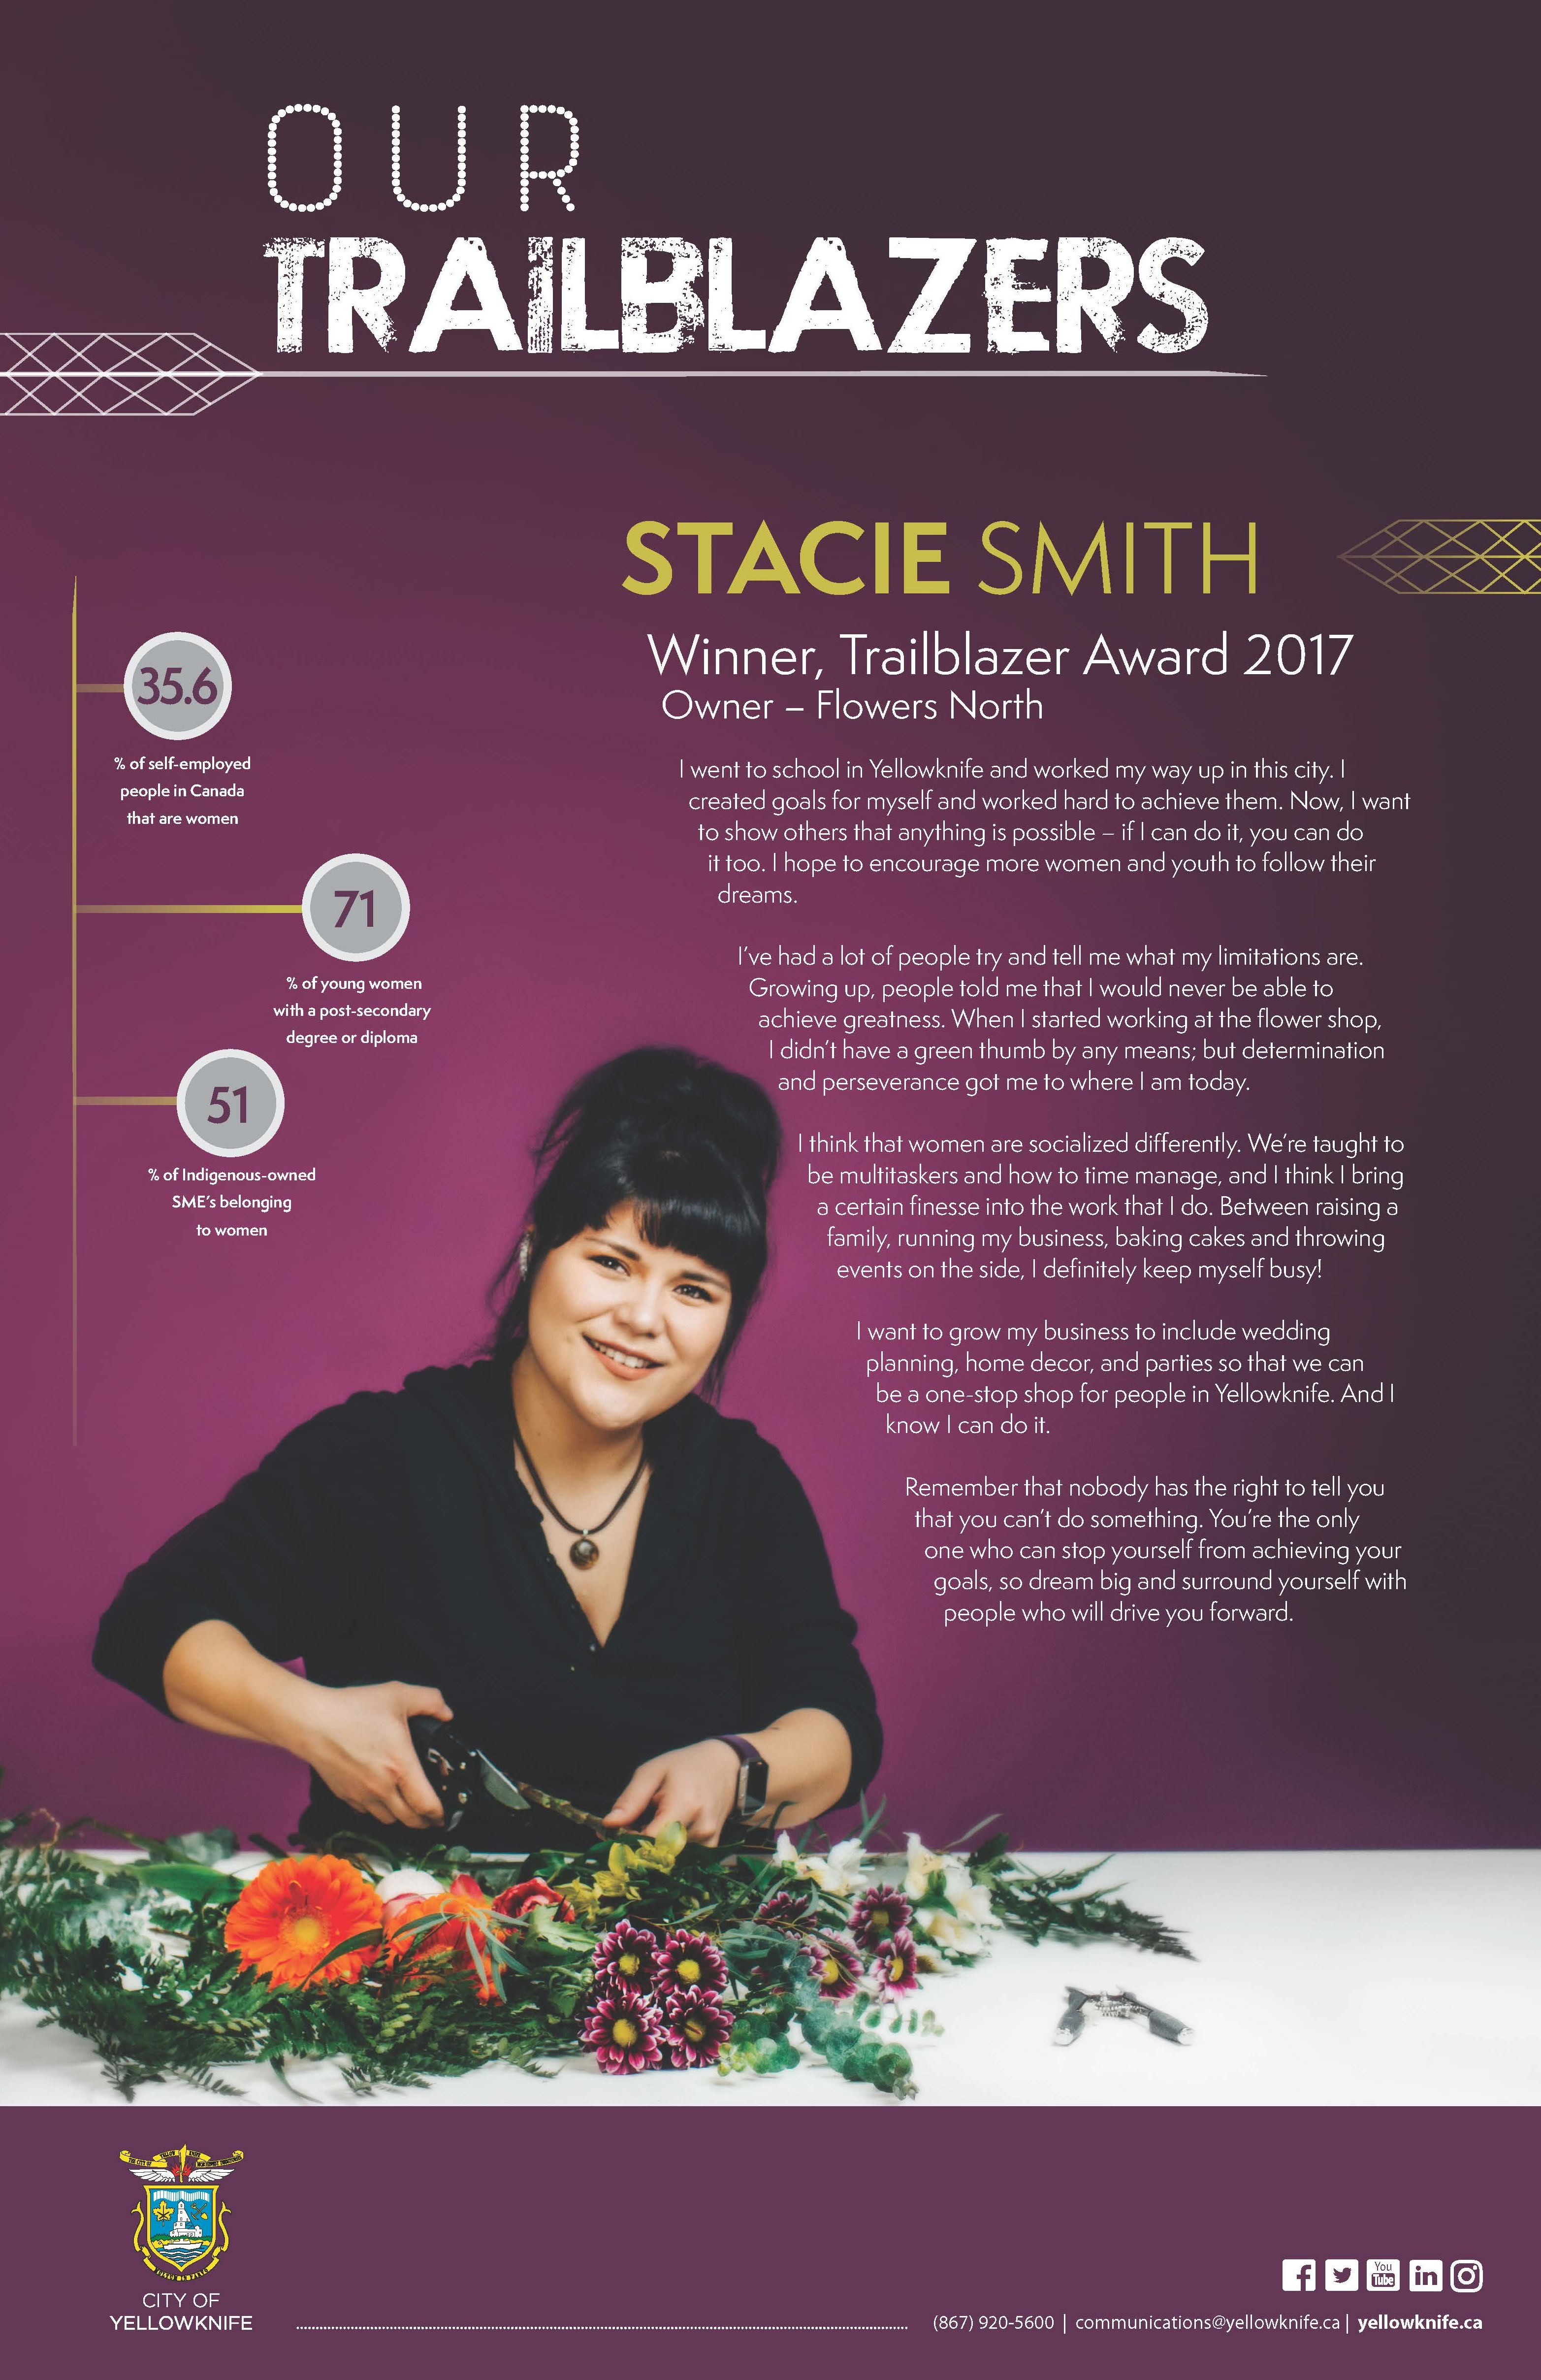 Our Trailblazers - Stacie Smith